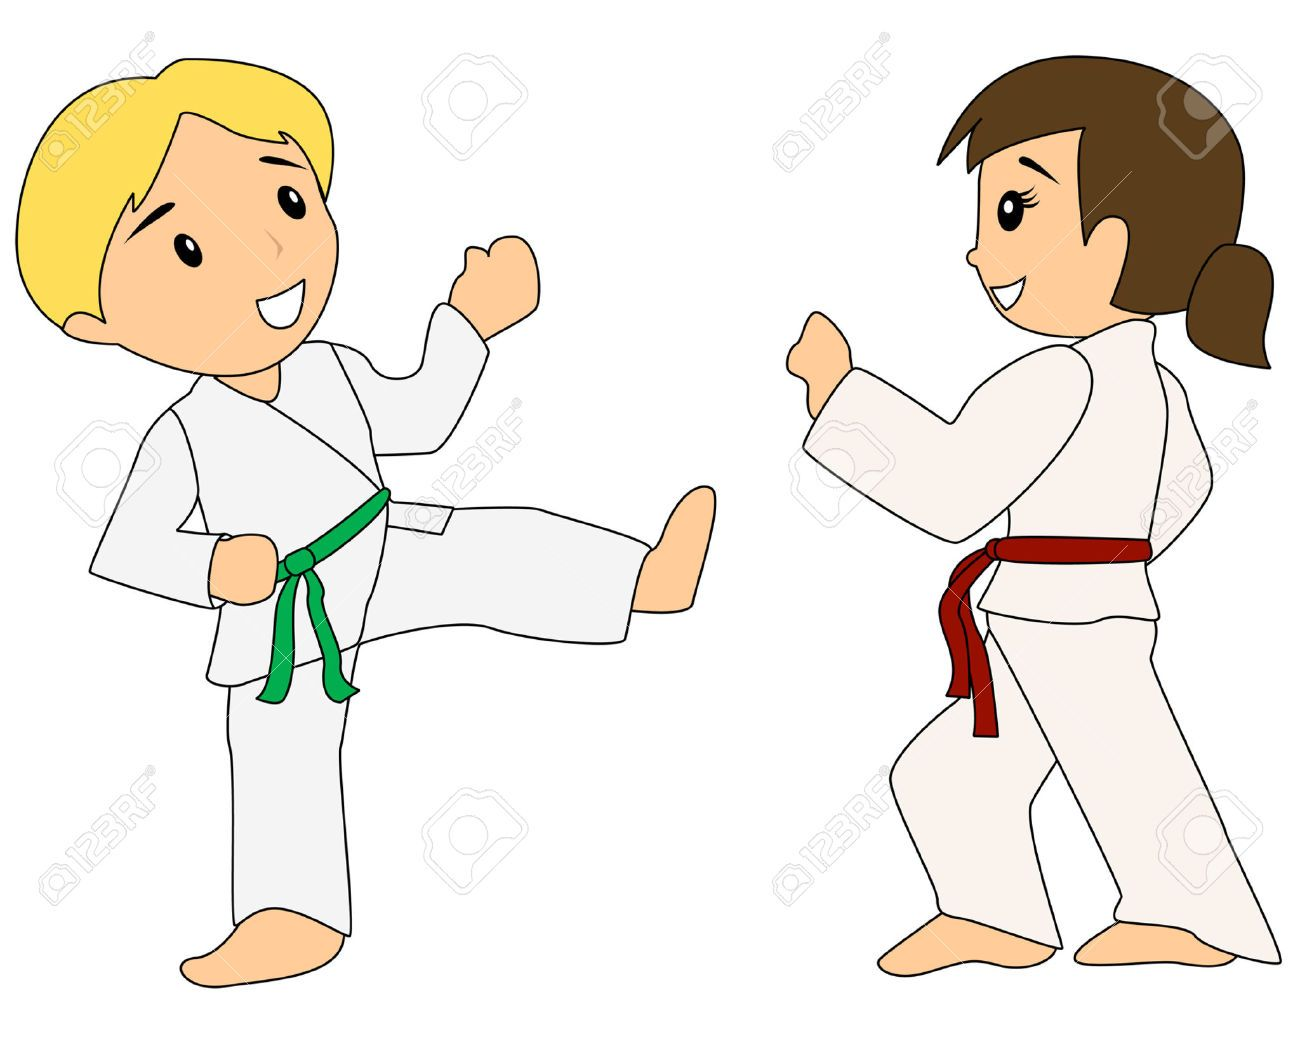 3277159-Children-learning-Taekwondo-Stock-Vector-taekwondo-sports ...